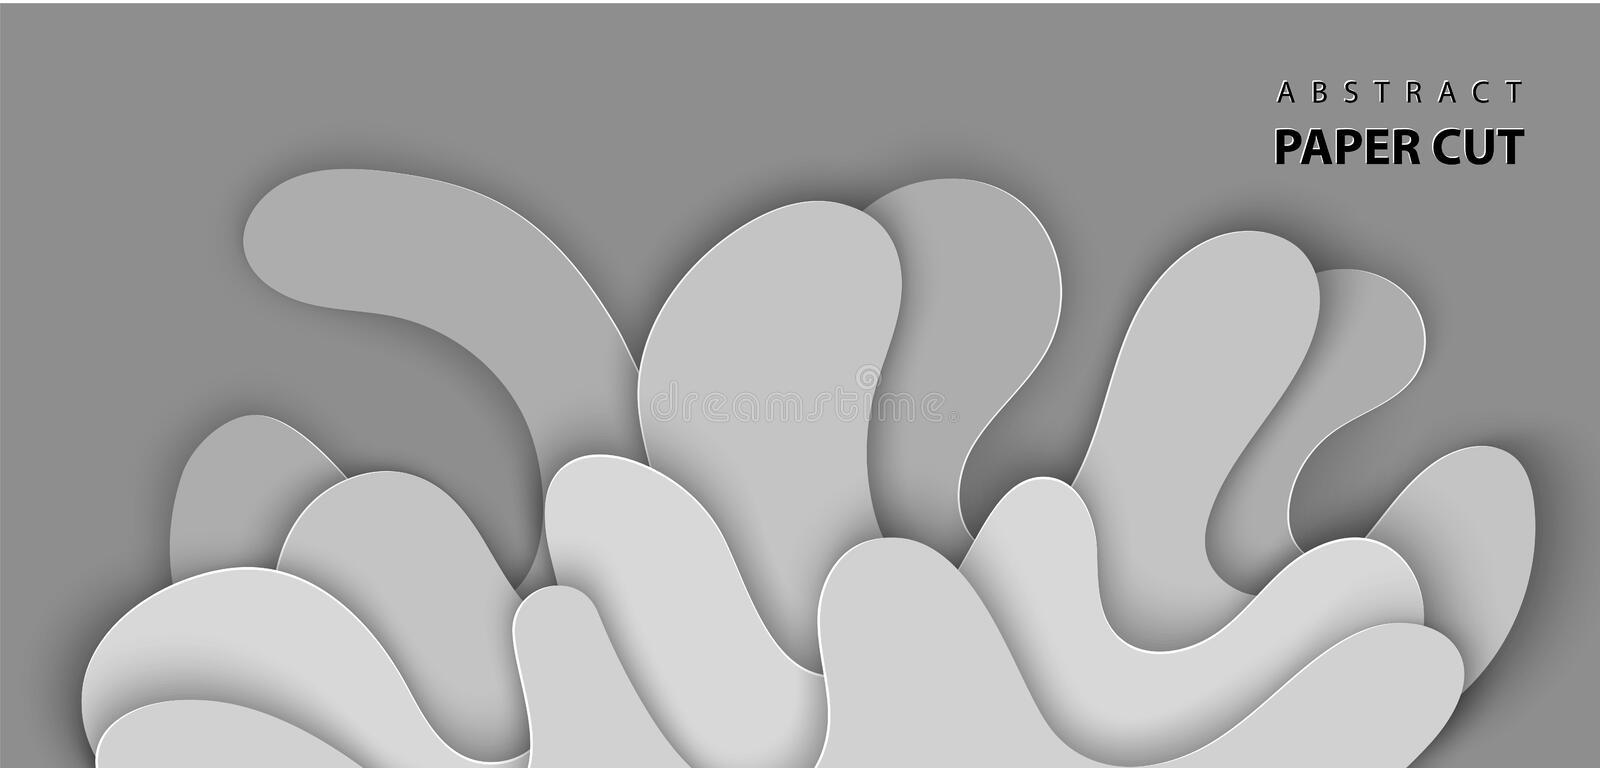 Vector background with splash water paper cut shapes in gray color. 3D abstract paper art style, design layout for advertising,. Flyers, posters, prints vector illustration